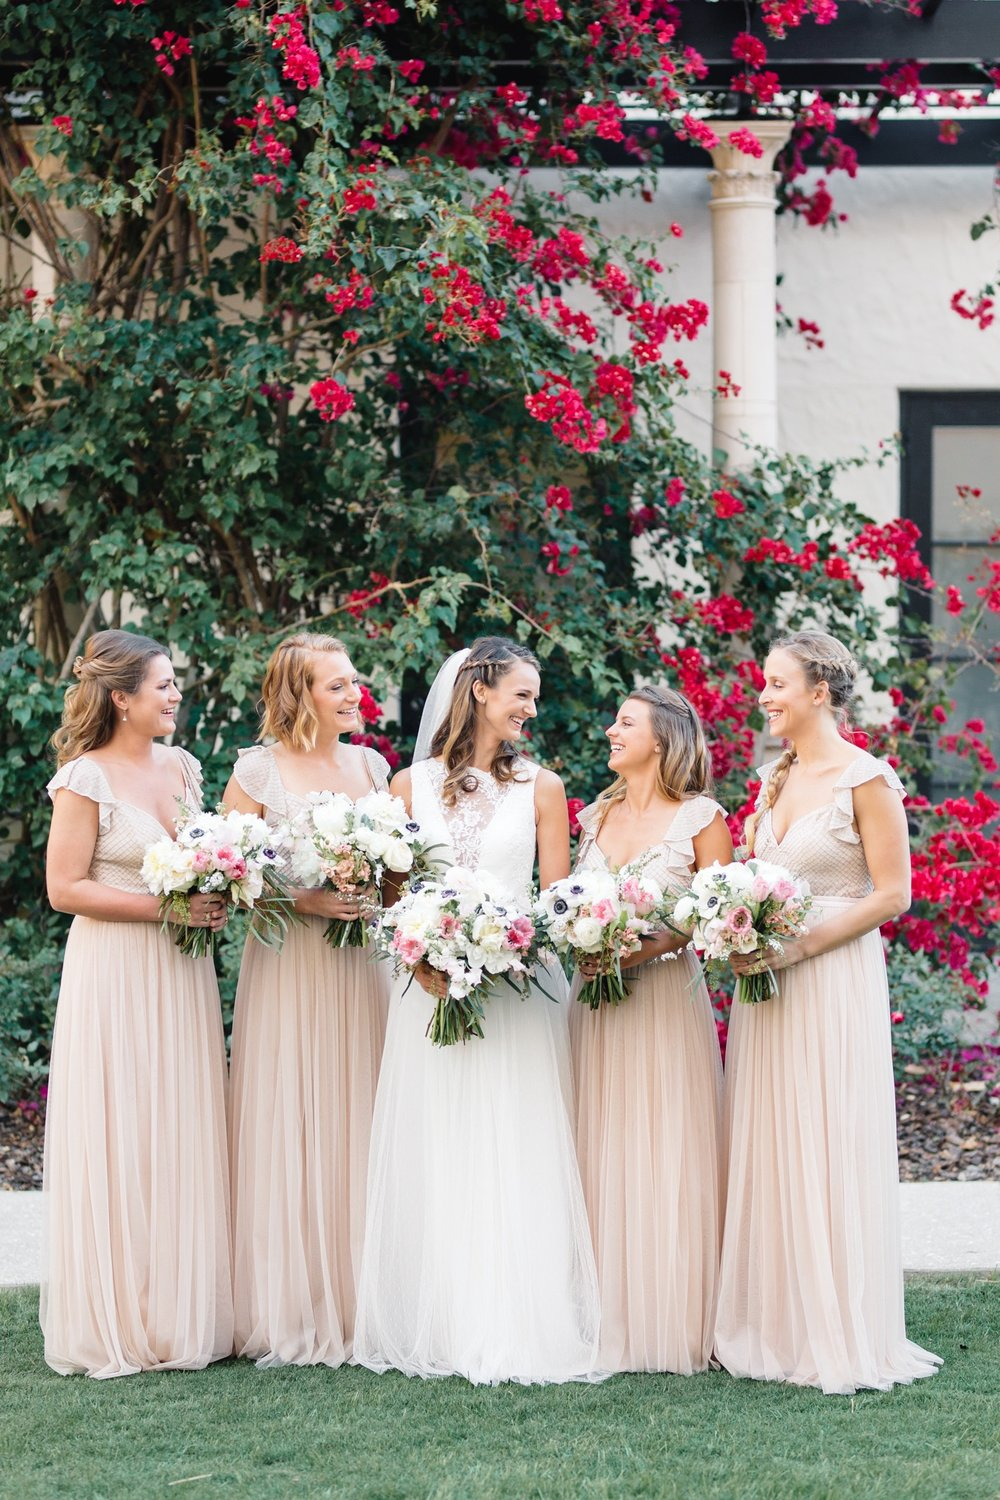 Blush Bridesmaid dresses from Asos, Winter Park Weddings